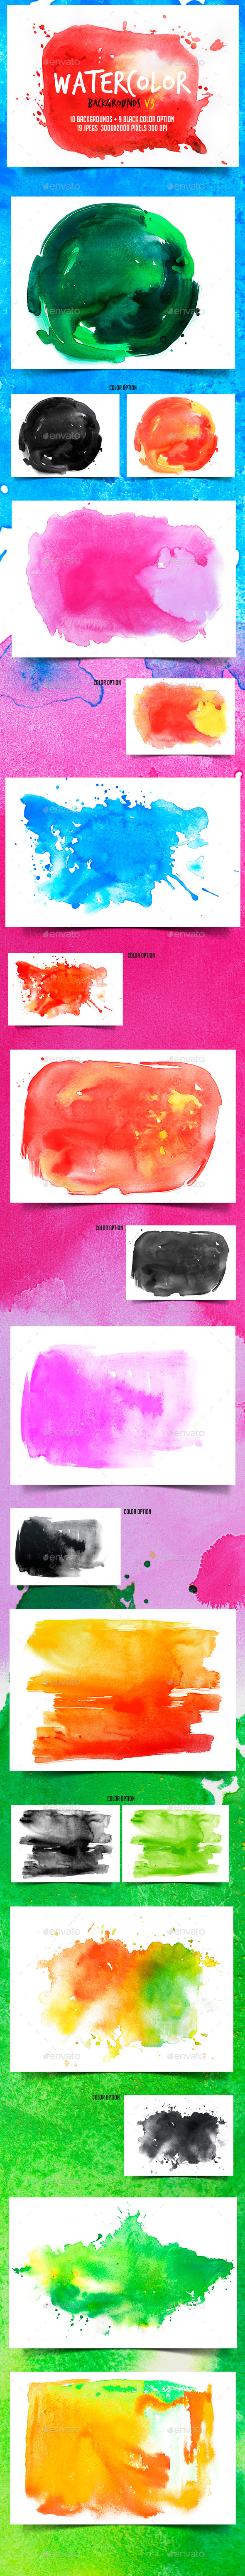 Watercolor Backgrounds 3 - Backgrounds Graphics